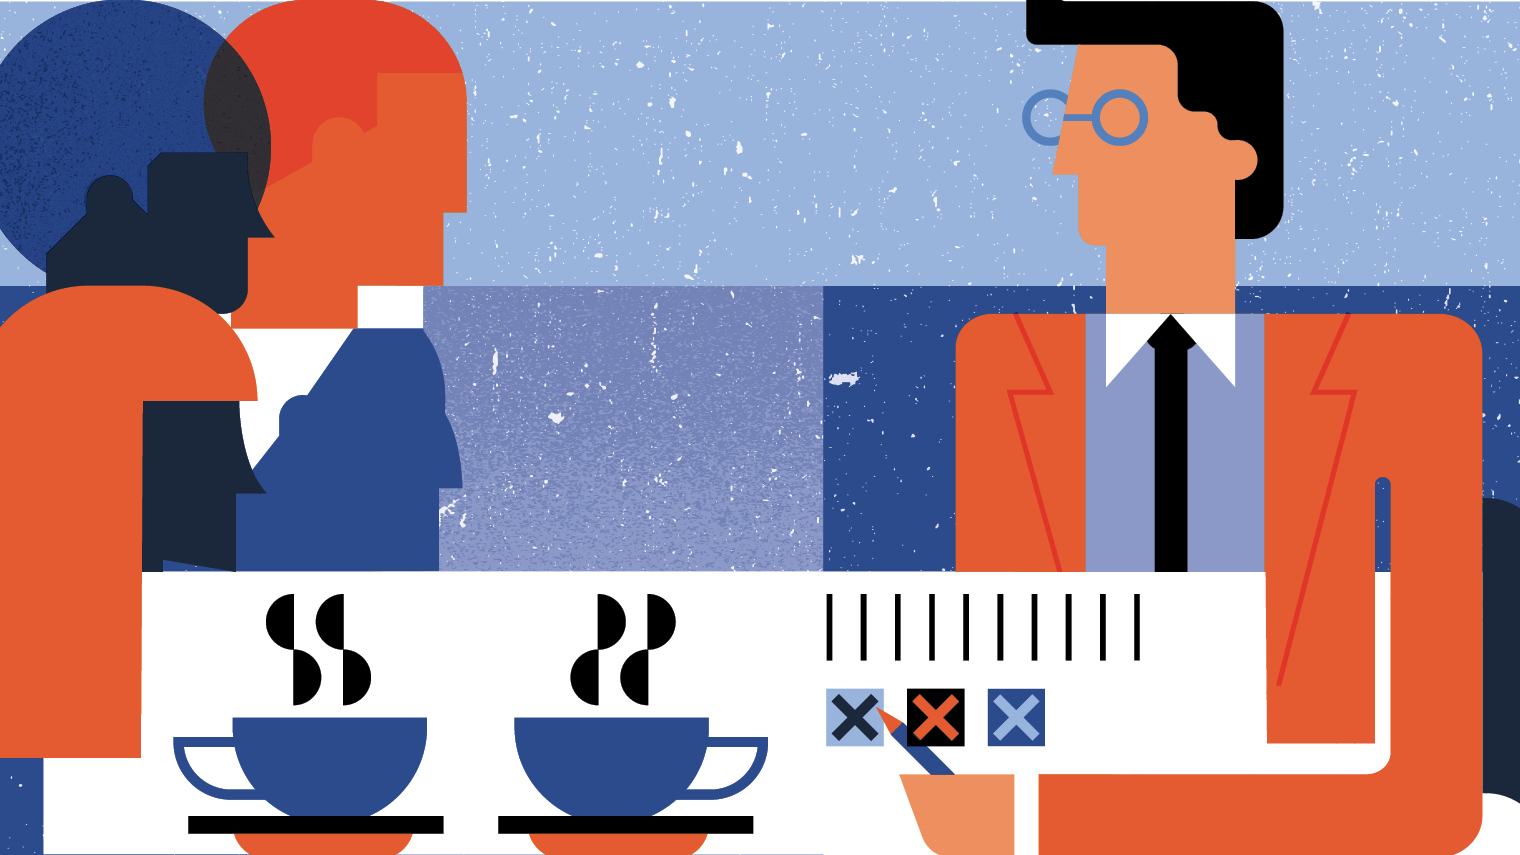 fairness and diversity in the workplace Diversity in a workplace means more experience, more perspectives and more source material to draw from in brainstorming, solving problems and creating innovative products or services a company's intellectual capital gains depth and breadth through diversity.